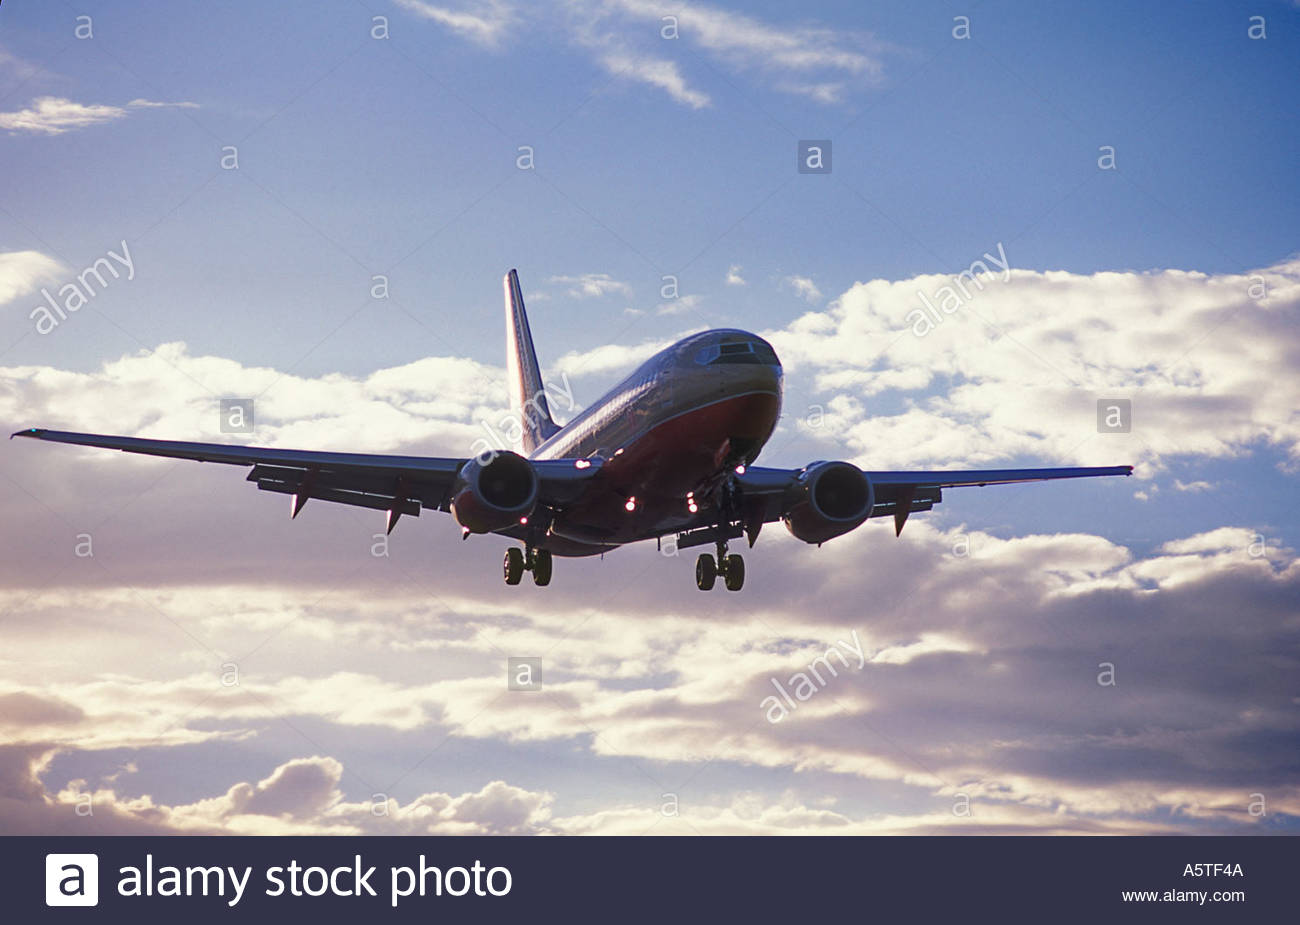 Commercial airliner landing. - Stock Image